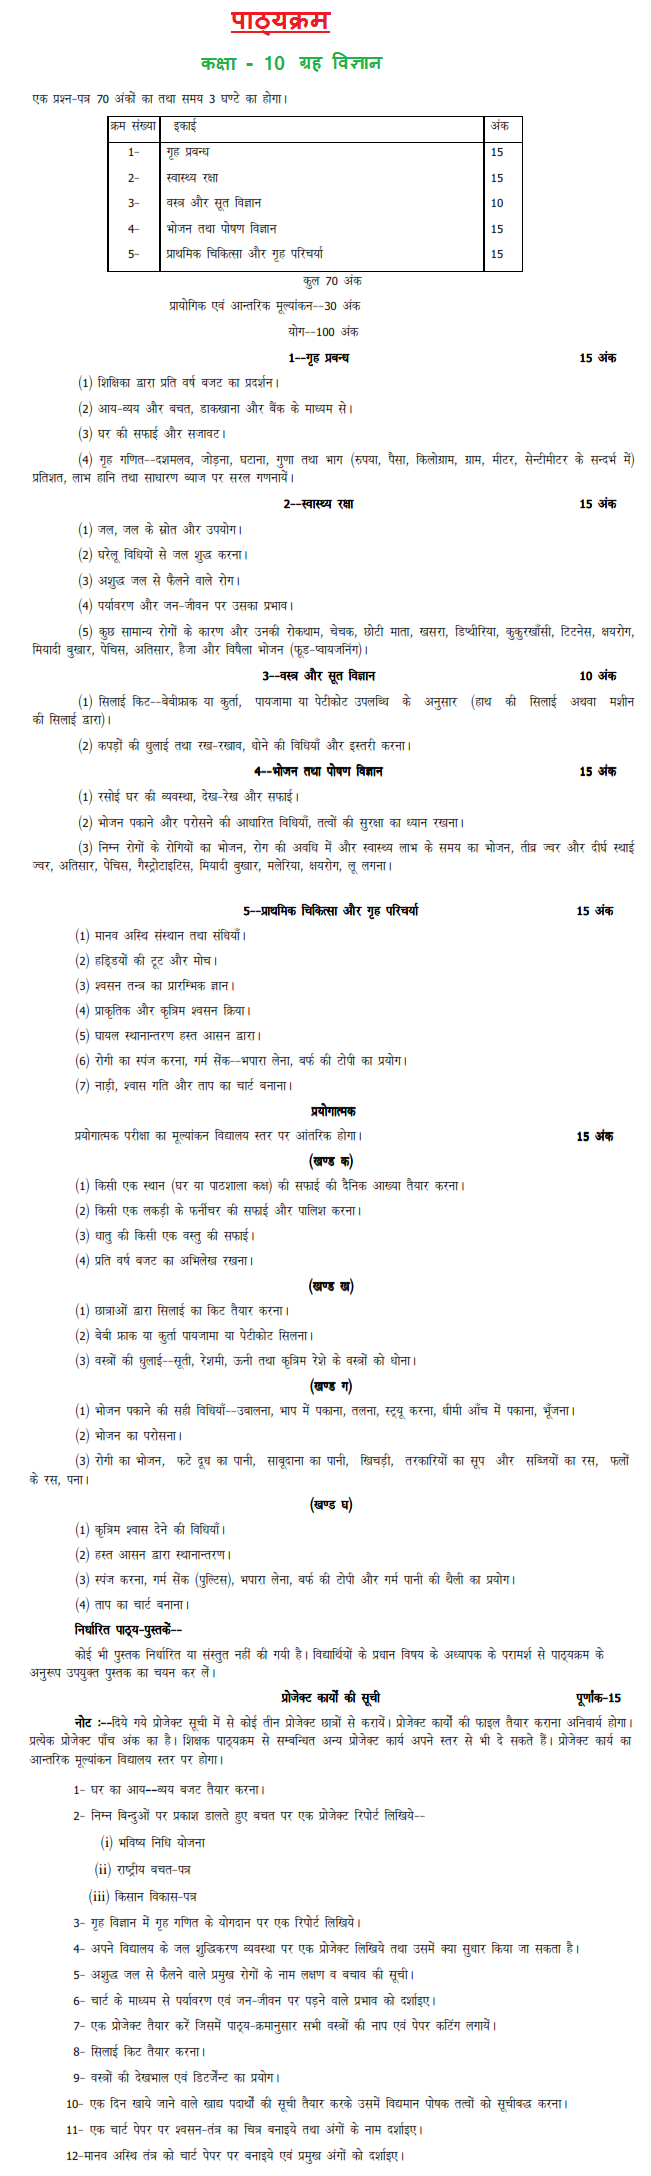 NIOS Class 10th syllabus